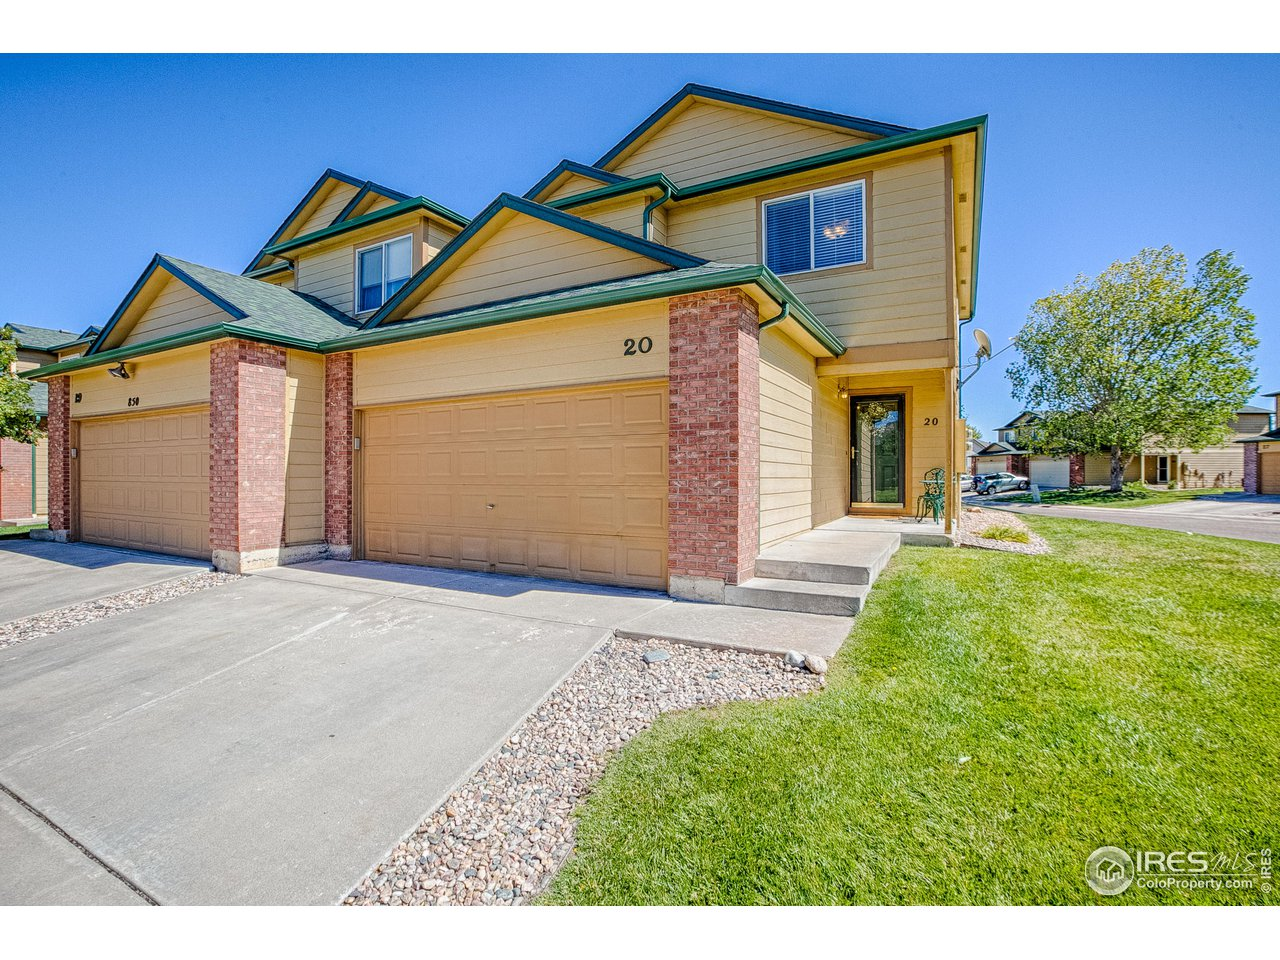 850 S Overland Trl 20, Fort Collins CO 80521